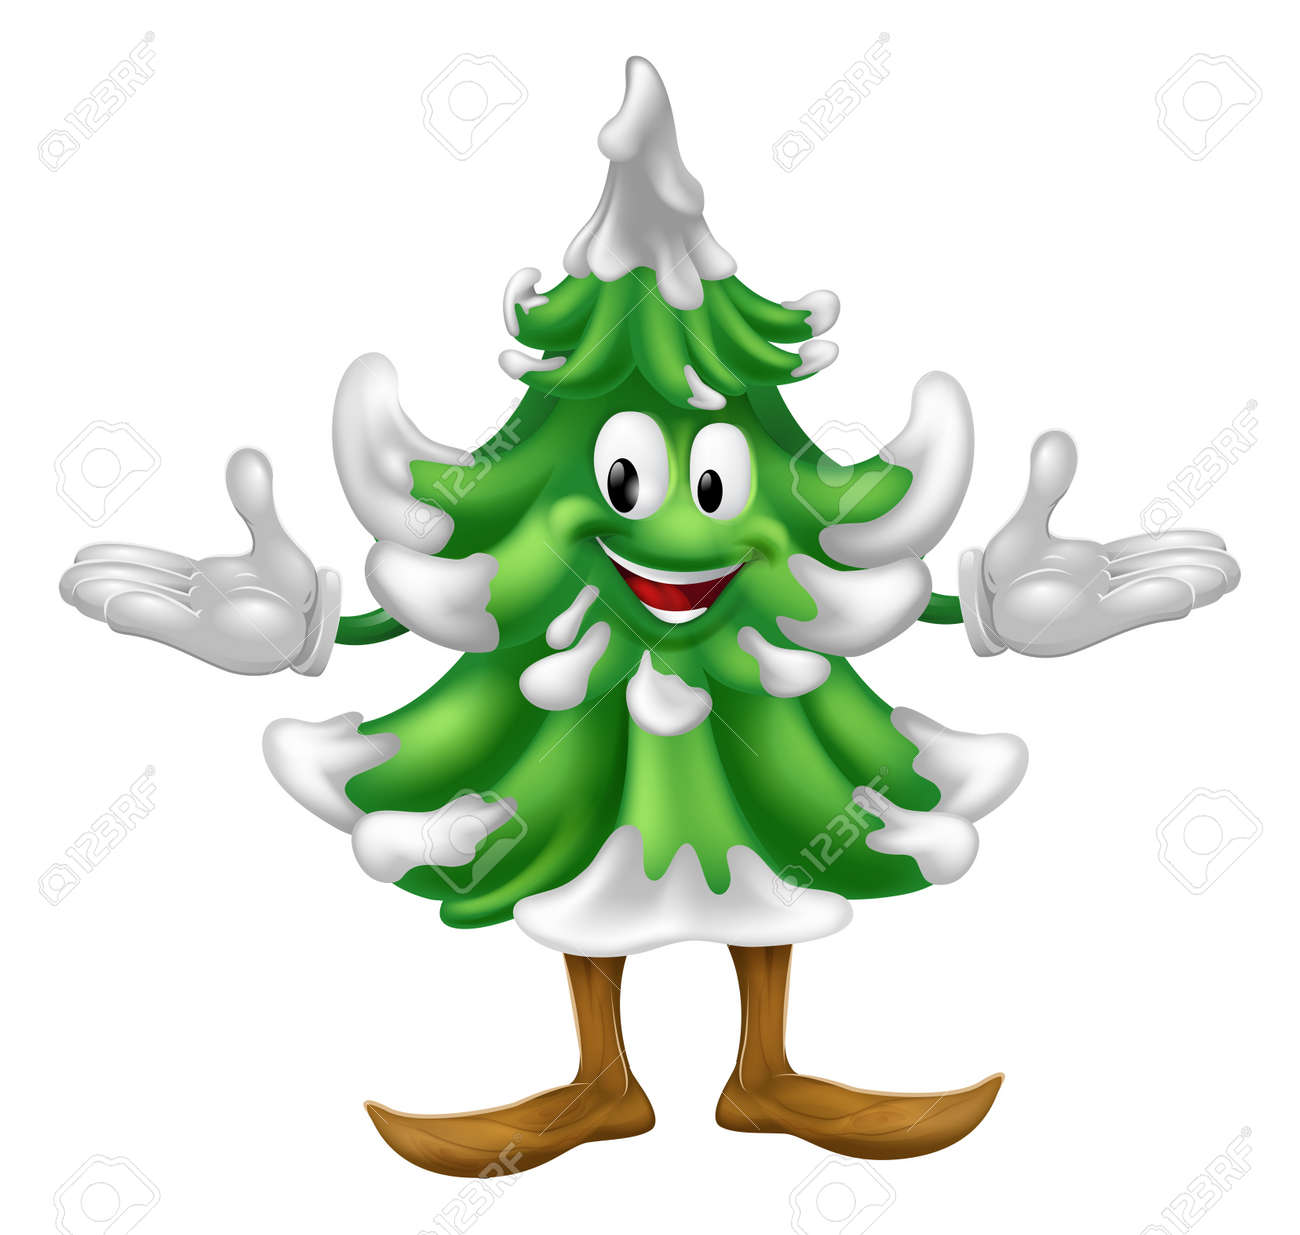 An illustration of a Christmas tree mascot character Stock Vector - 14719976